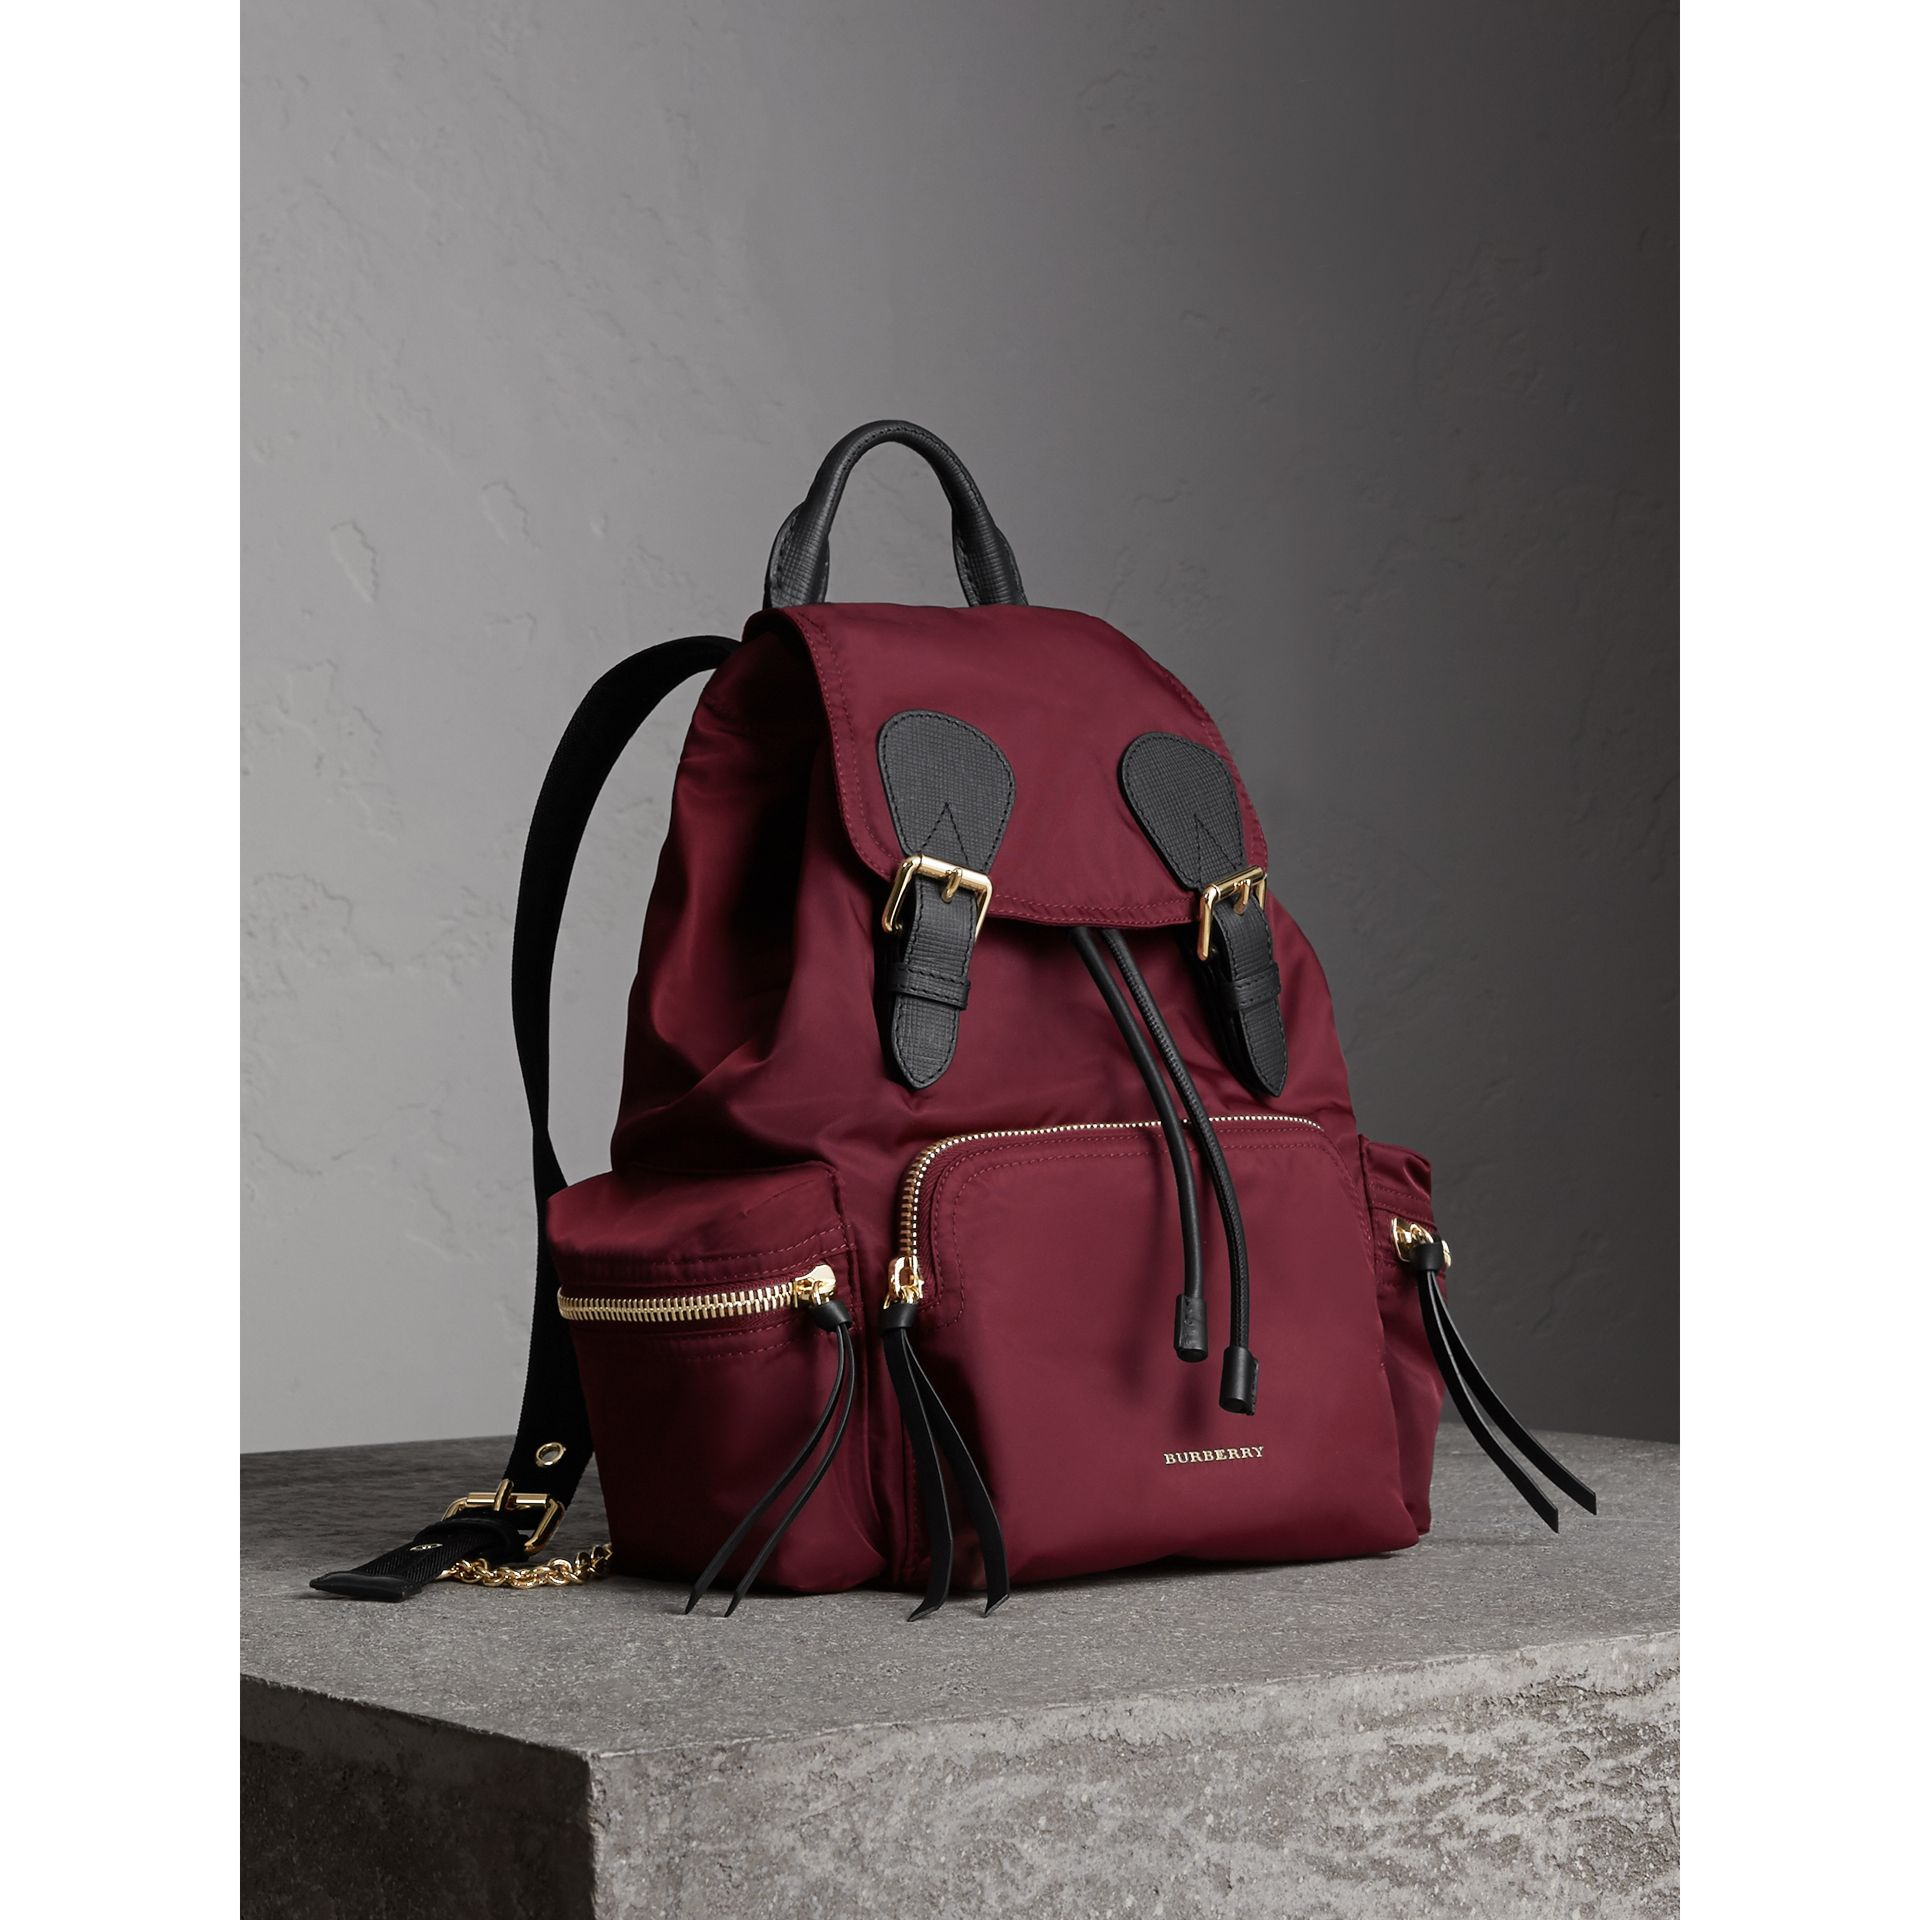 Sac The Rucksack moyen en nylon technique et cuir (Rouge Bourgogne) - Femme | Burberry - photo de la galerie 0